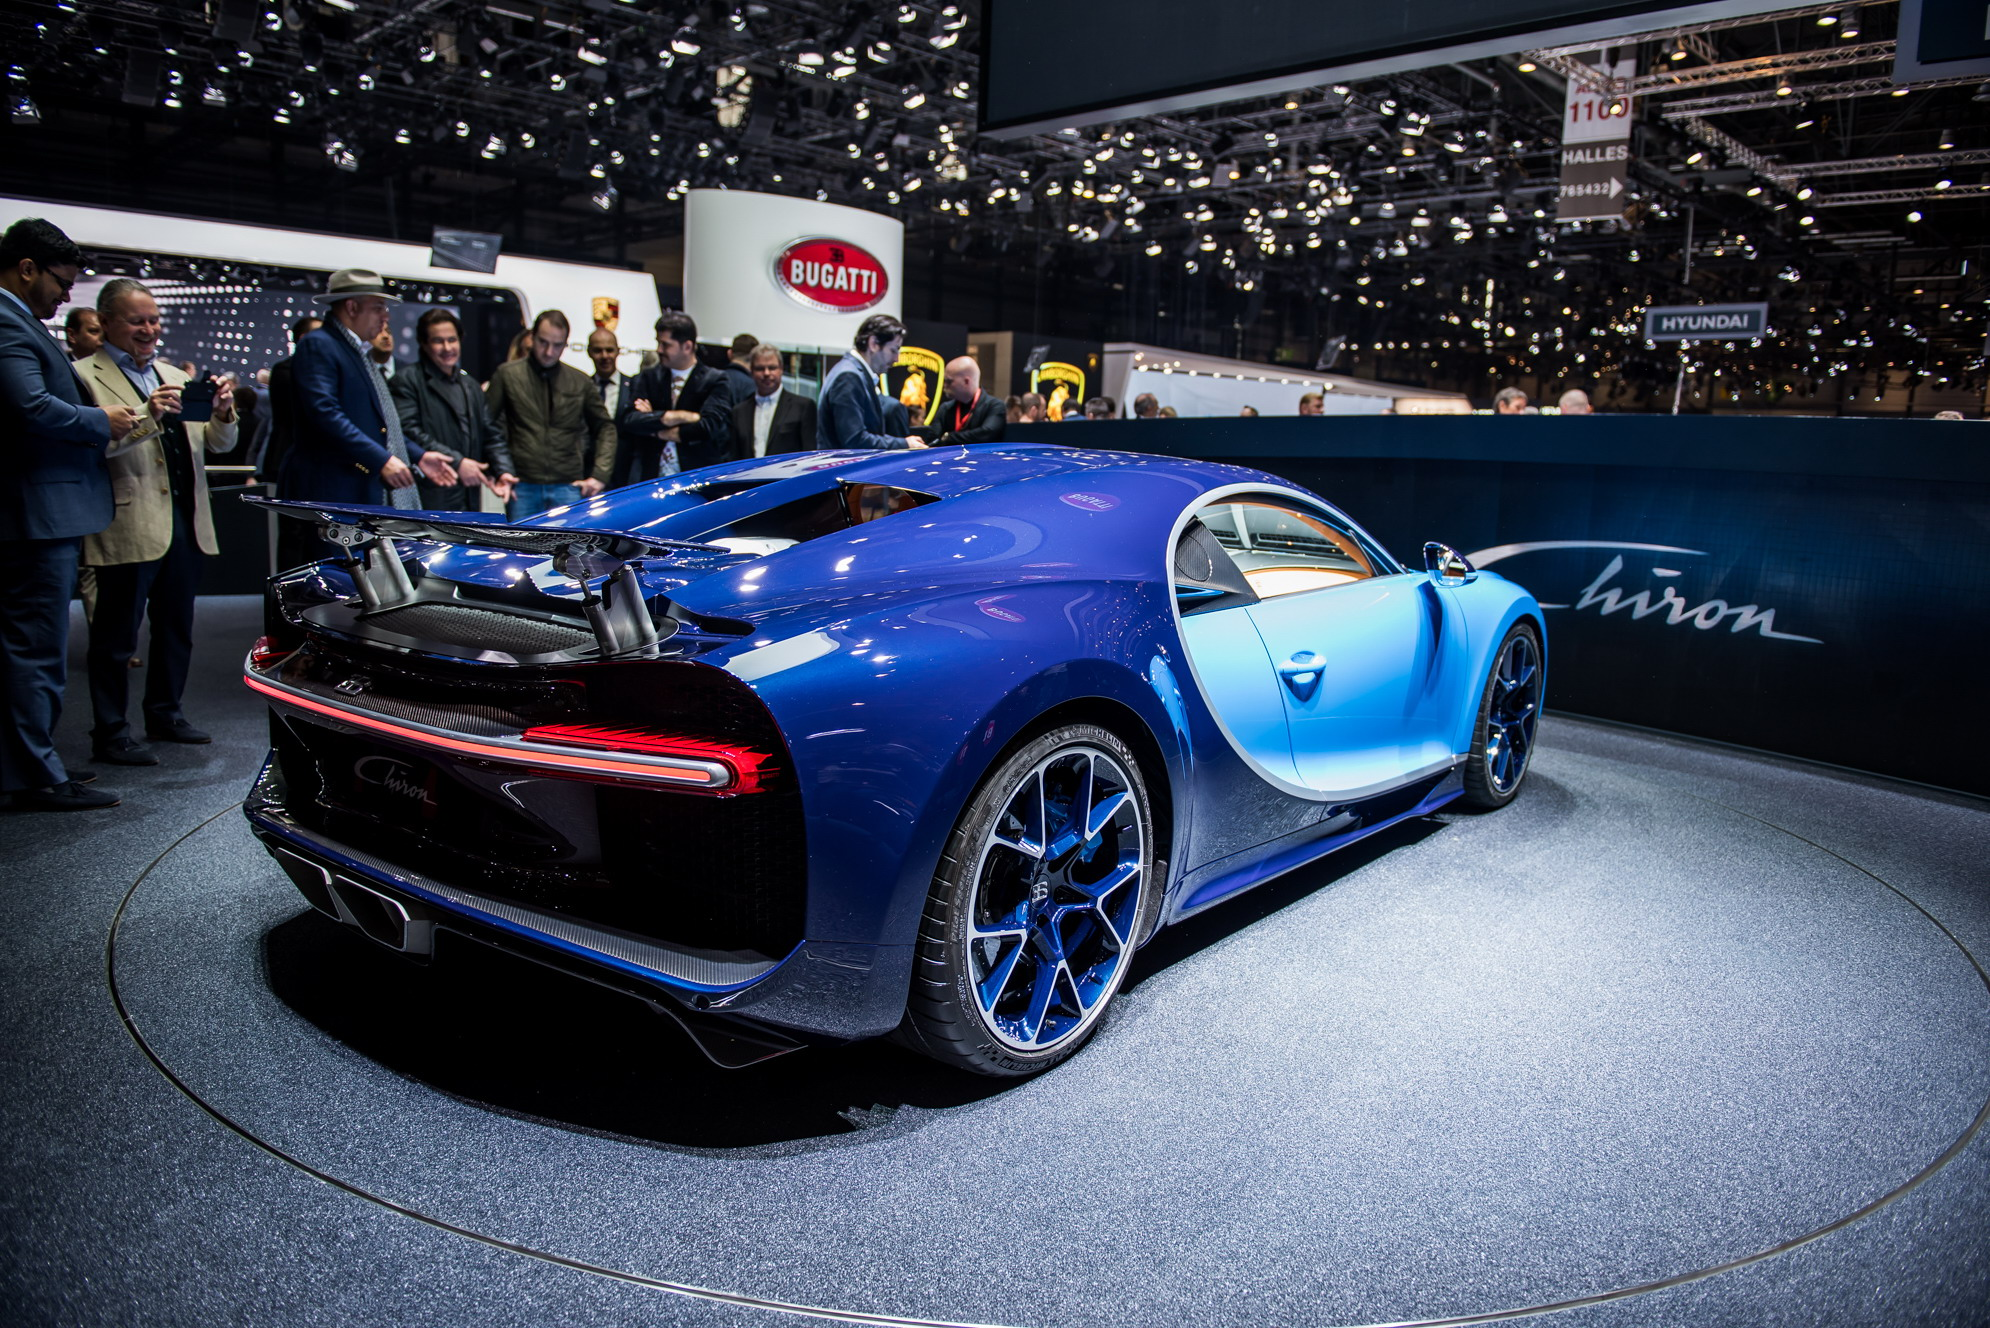 Top 10 Fastest Cars >> 2018 Bugatti Chiron Review - Top Speed